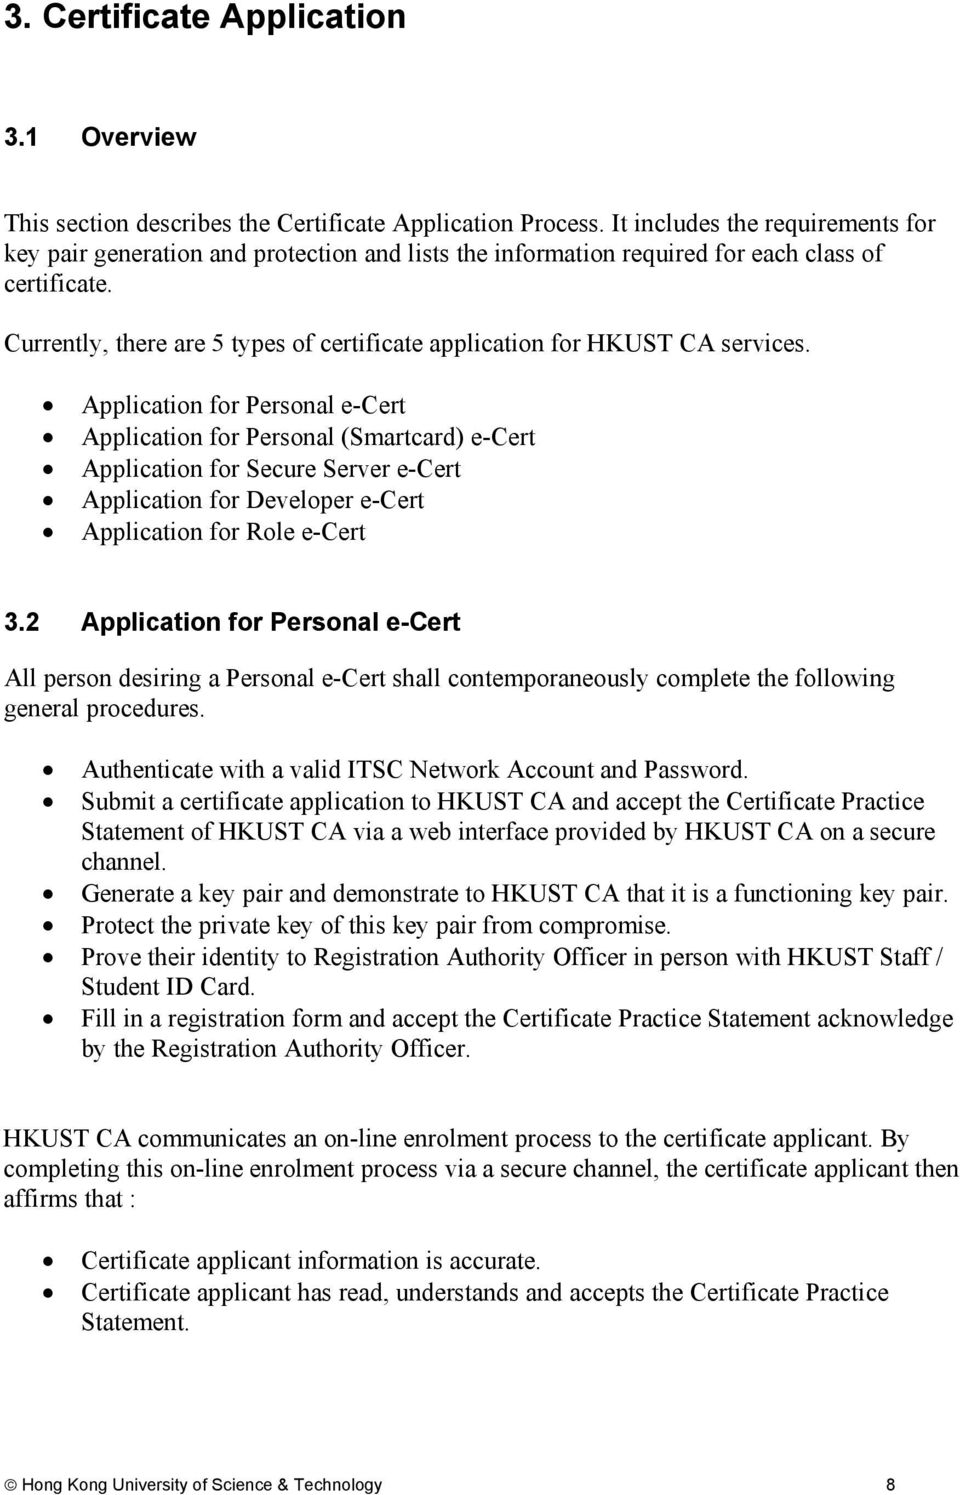 Currently, there are 5 types of certificate application for HKUST CA services.